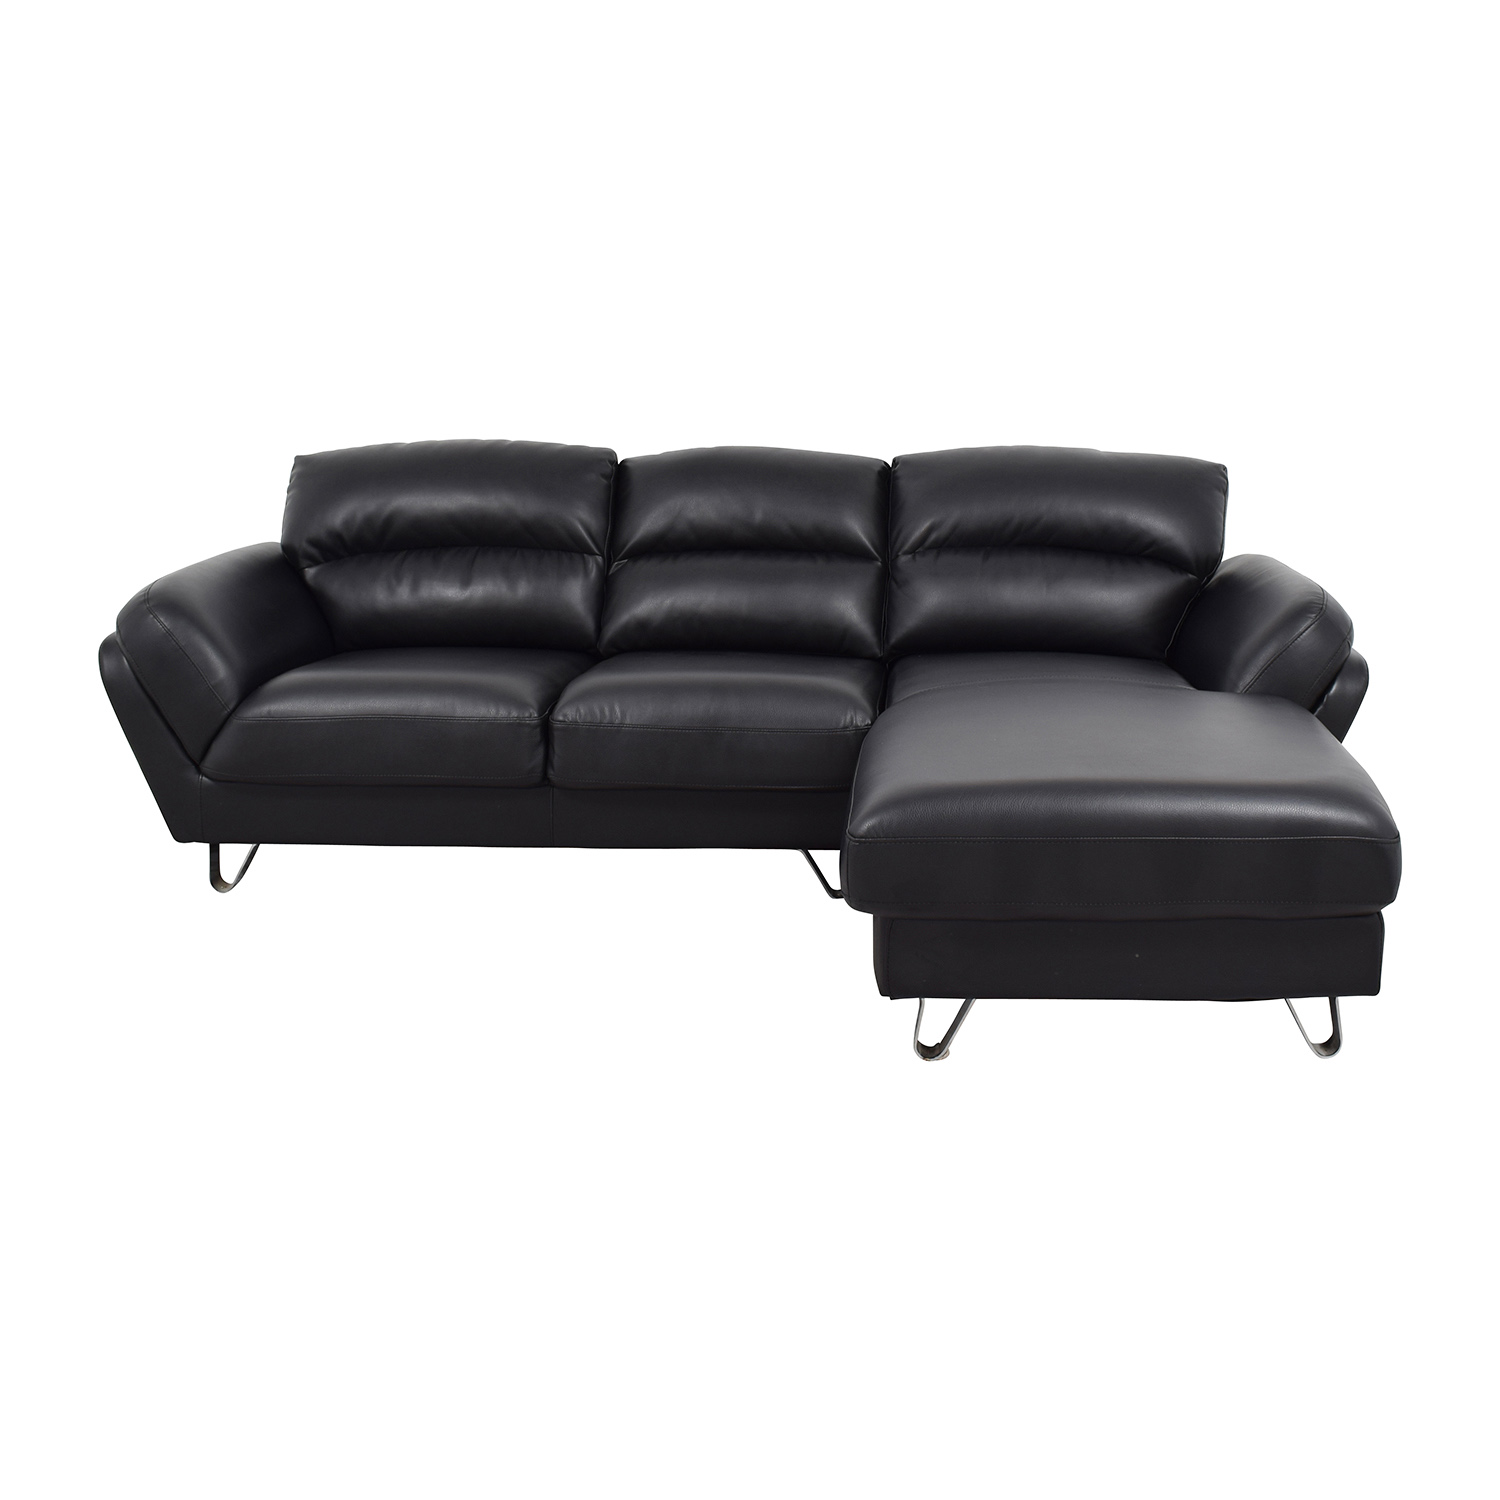 Contemporary Faux Leather Two-piece Sectional Sofa used